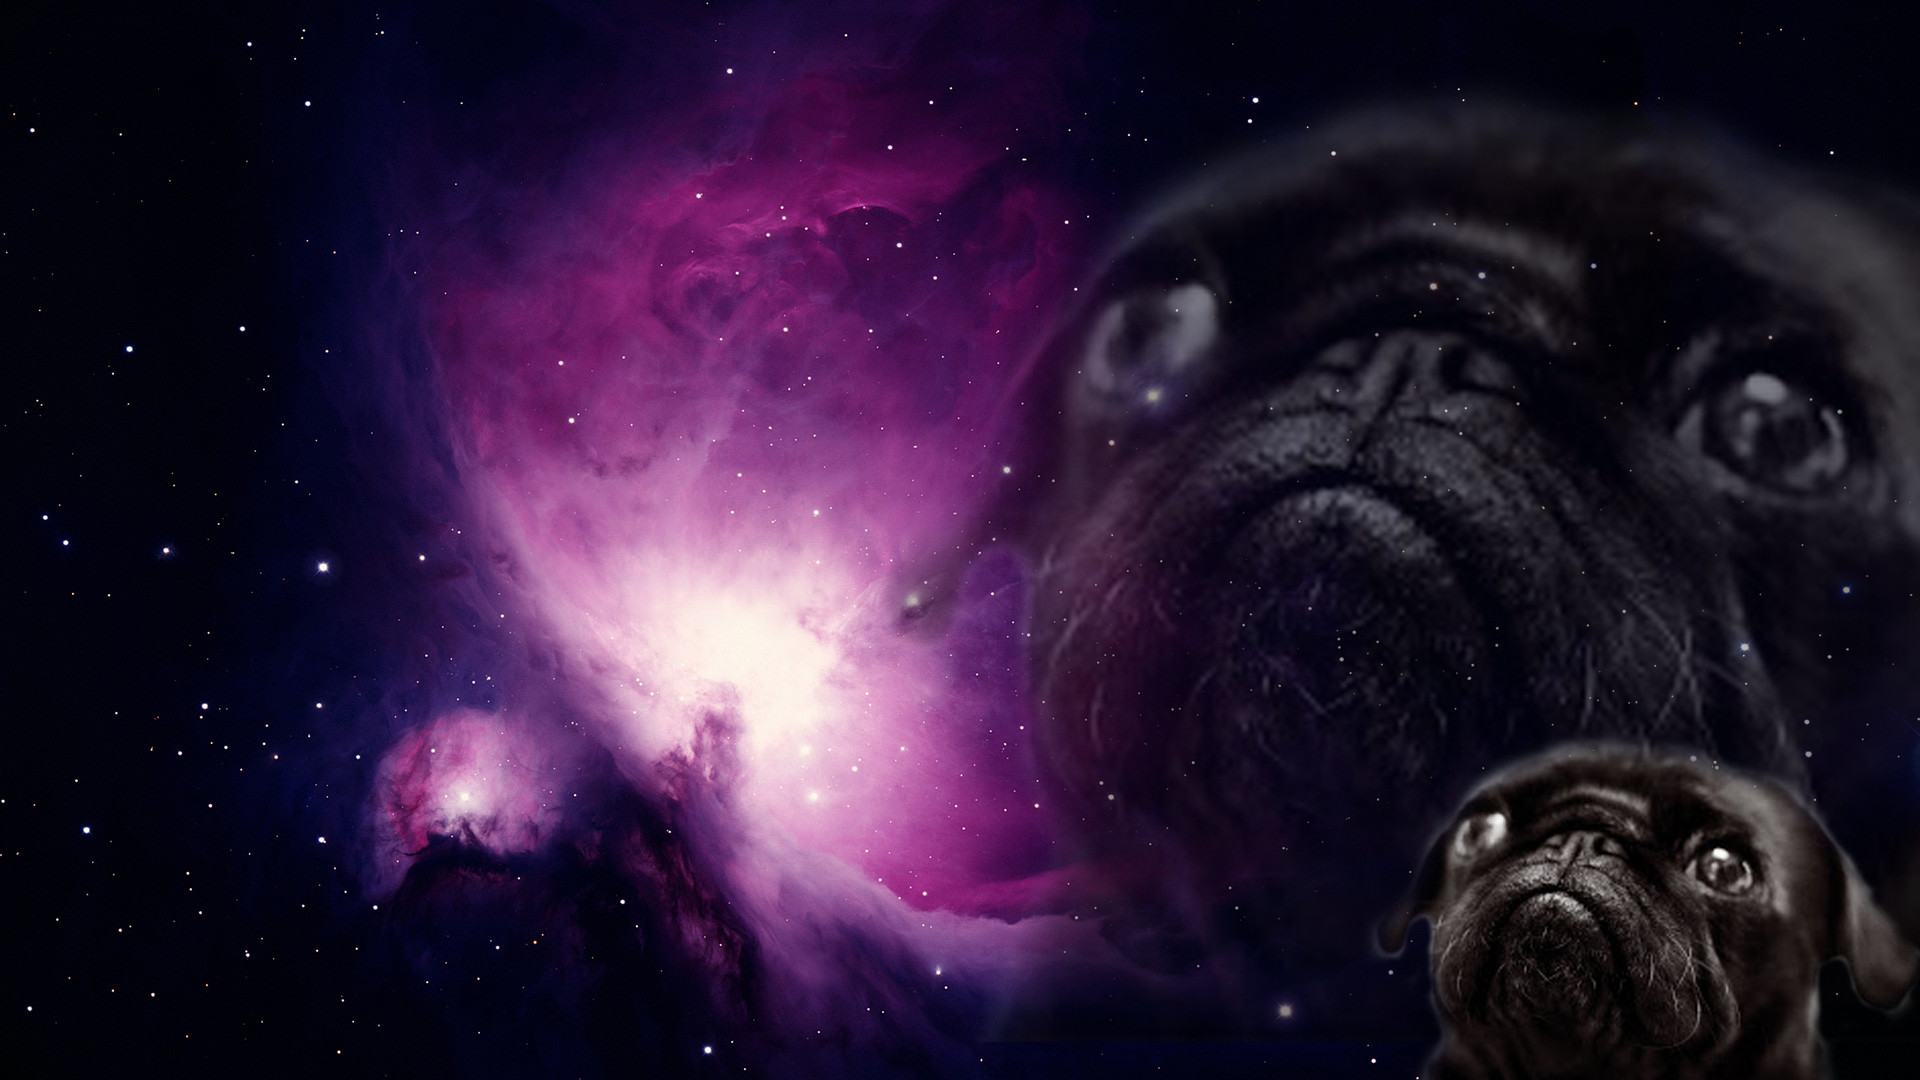 Download Pug Dog Hd Wallpaper Gallery: Funny Pug Pictures Wallpaper (75+ Images